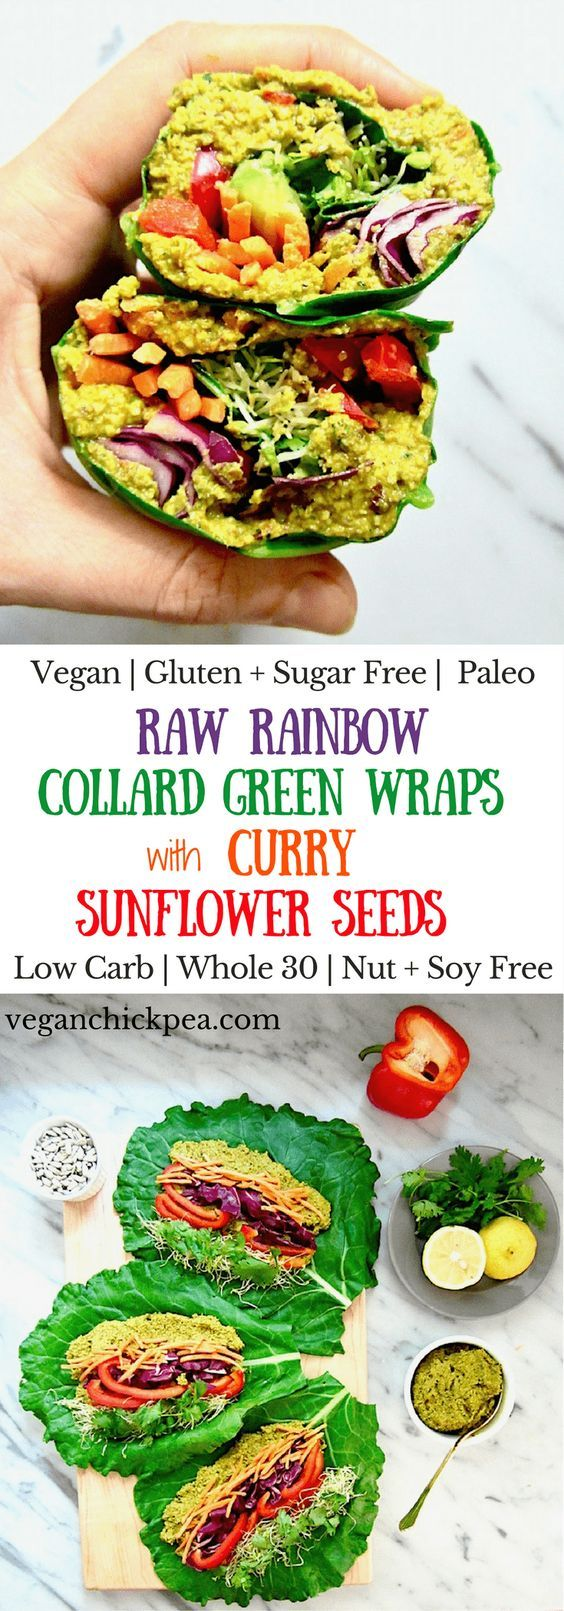 Raw Rainbow Collard Green Wraps With Curry Sunflower Seeds Low Carb